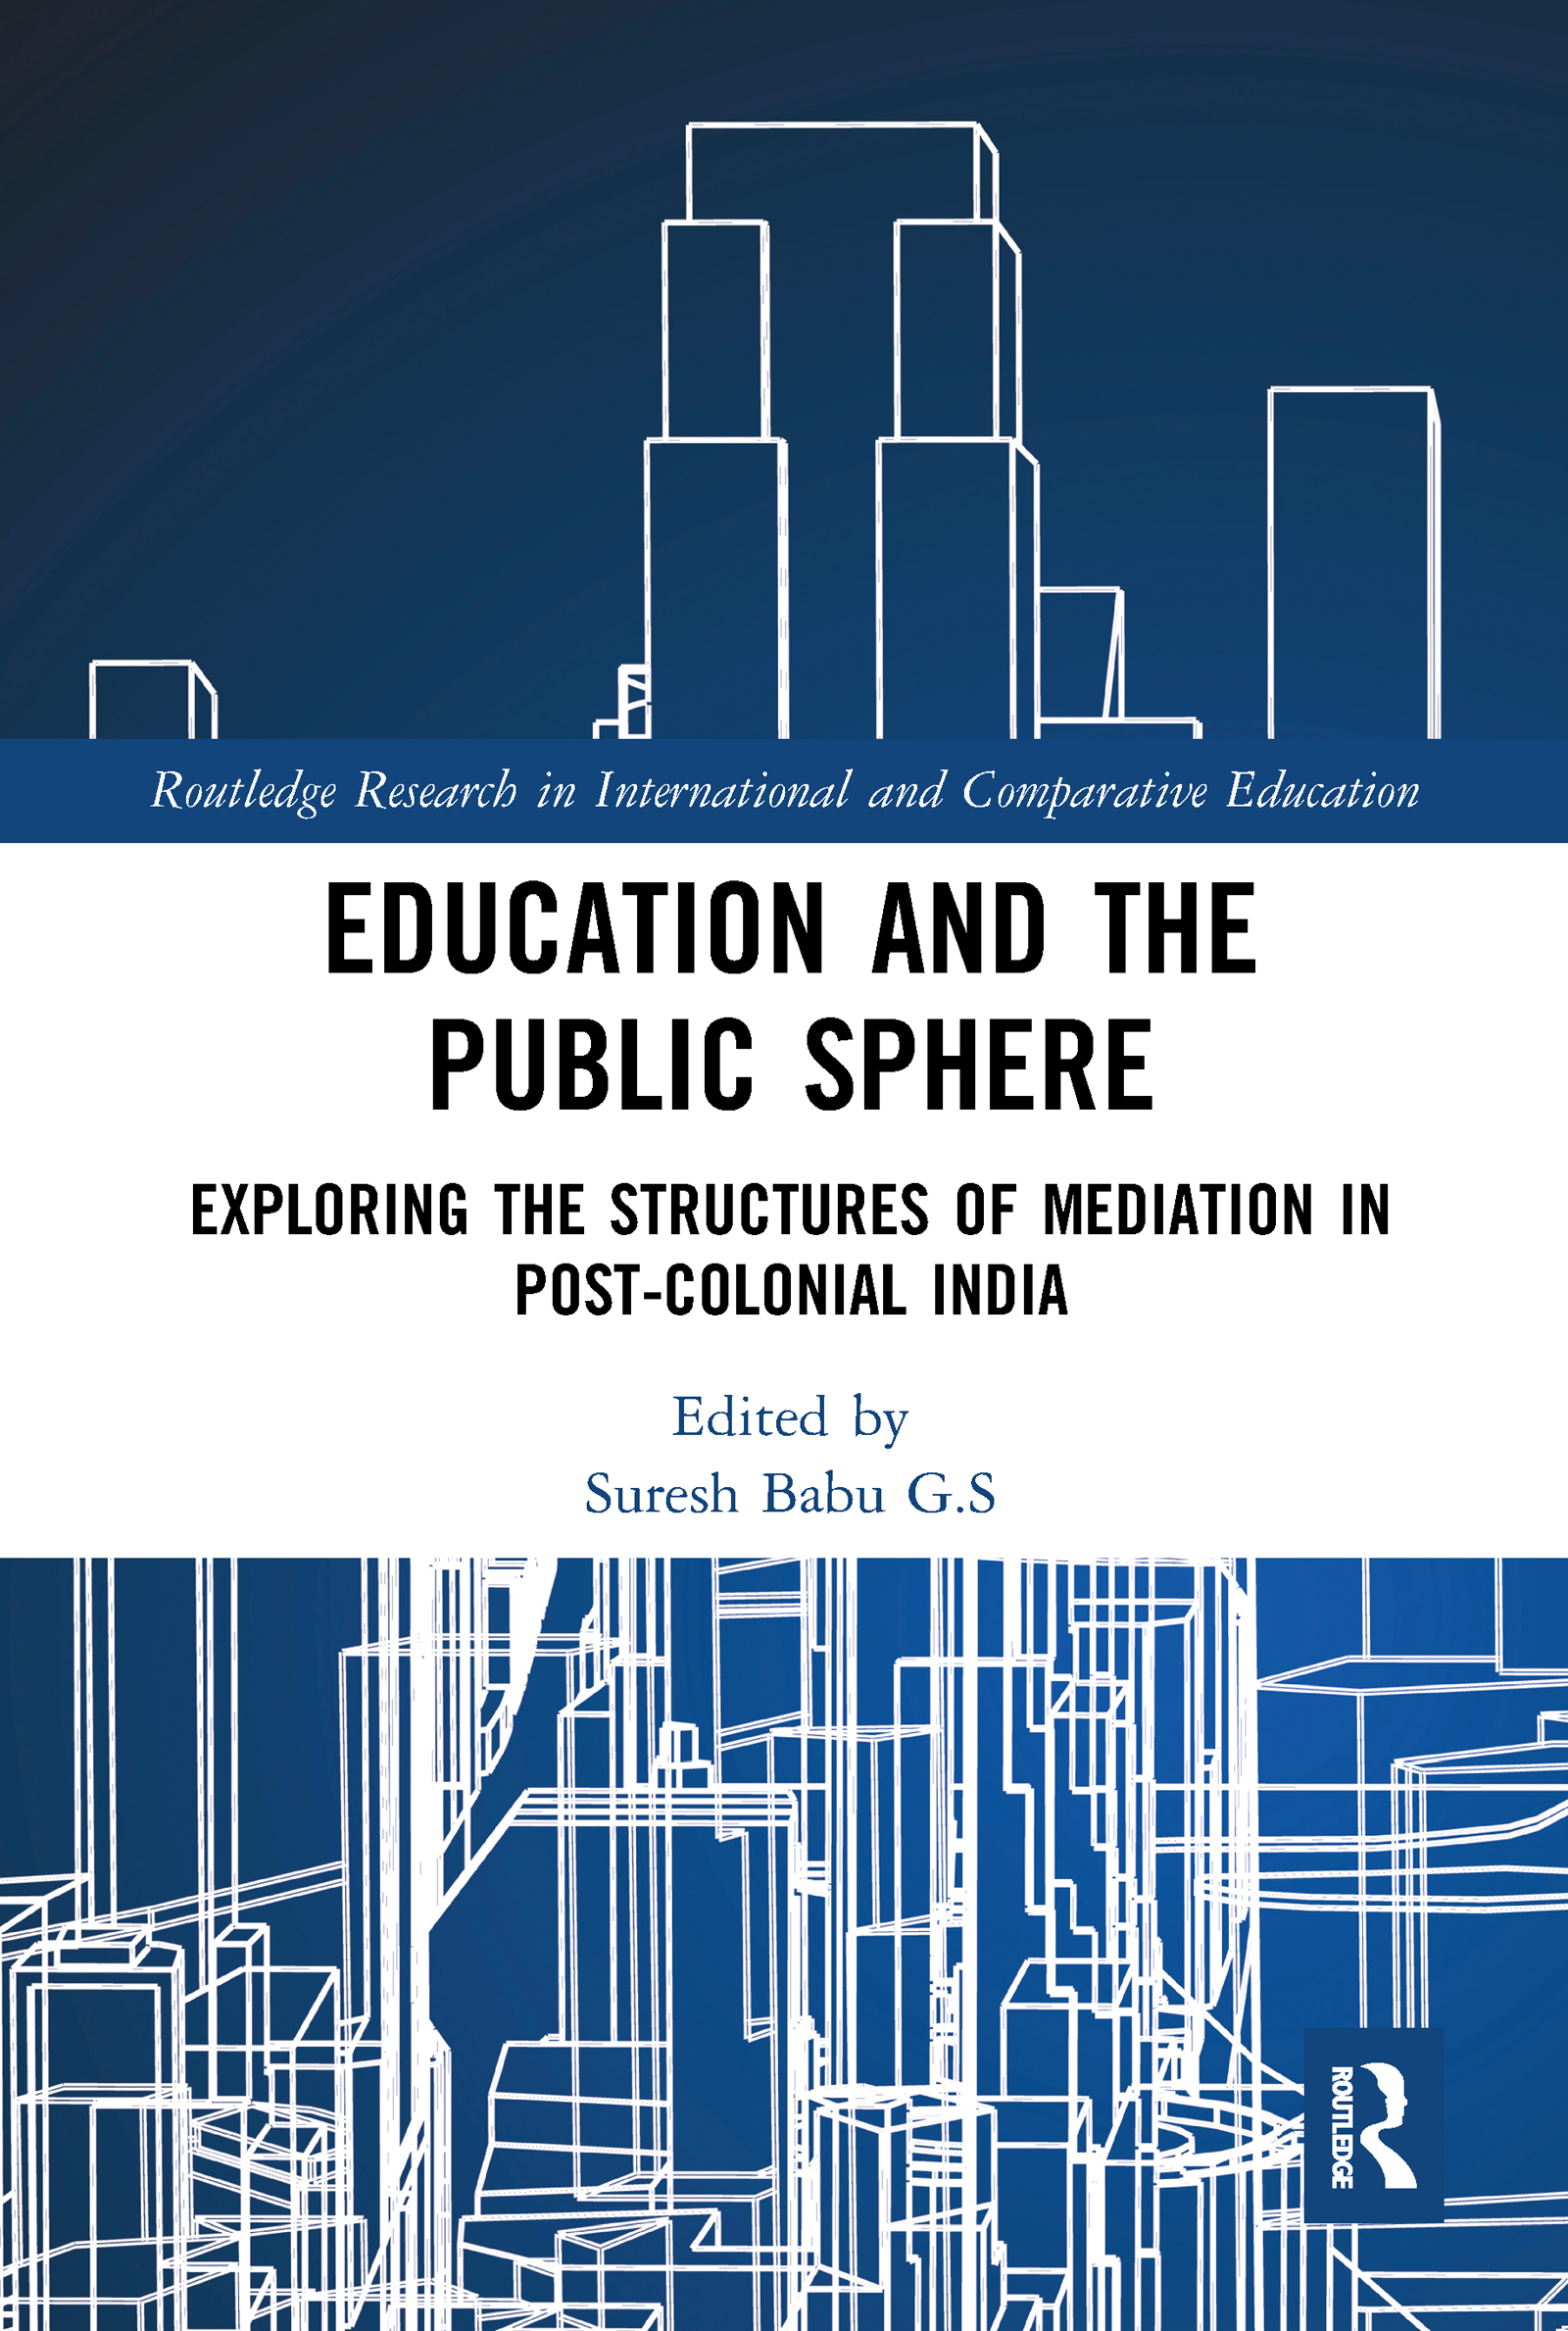 Education and the Public Sphere